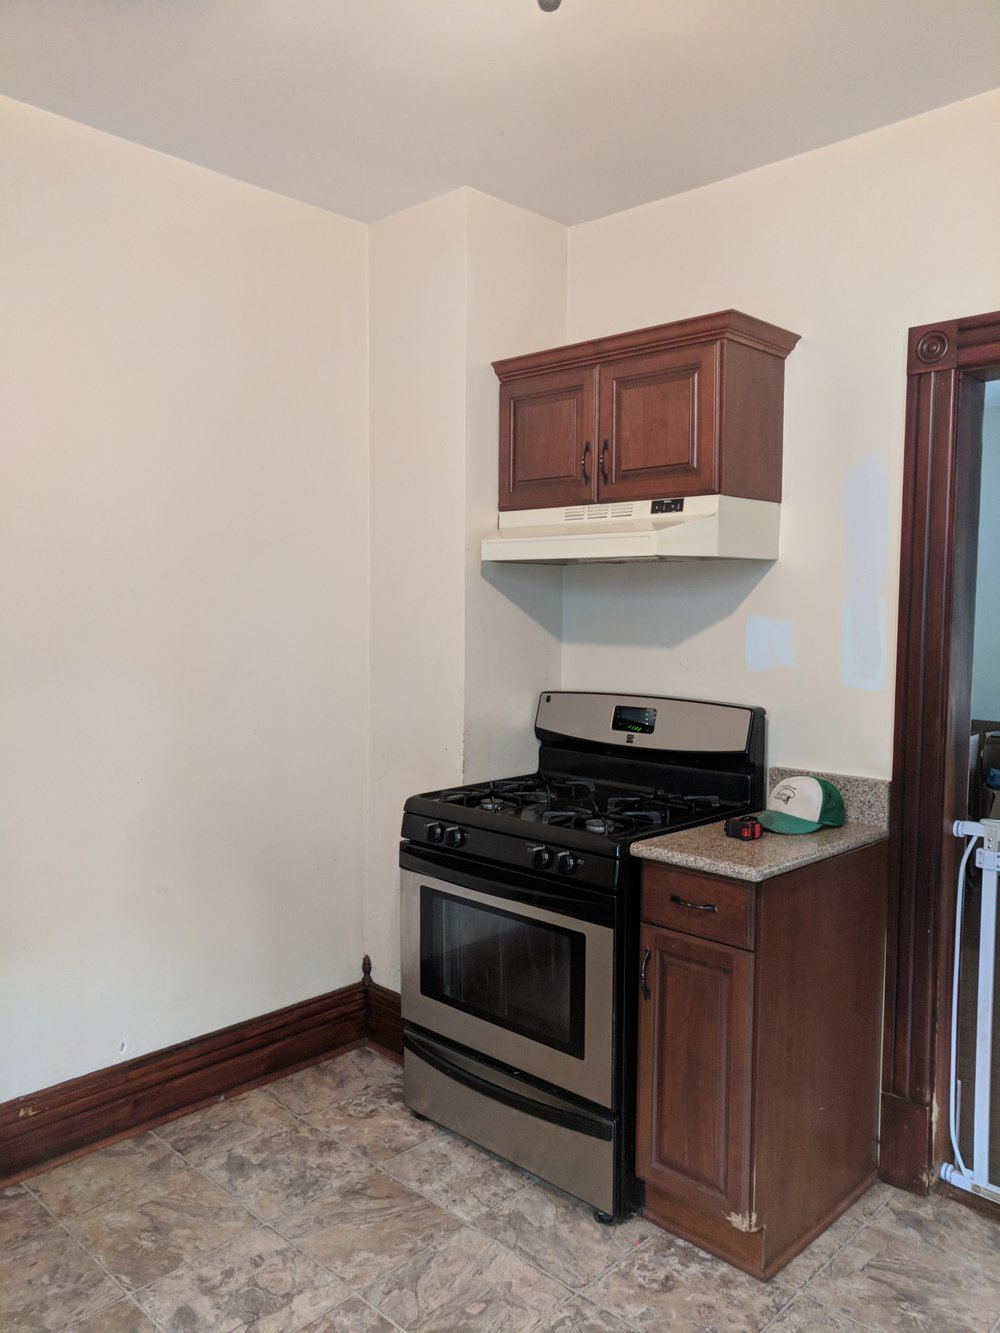 SOUTH-CONTENT-KITCHEN-RENOVATION-BEFORE.jpg